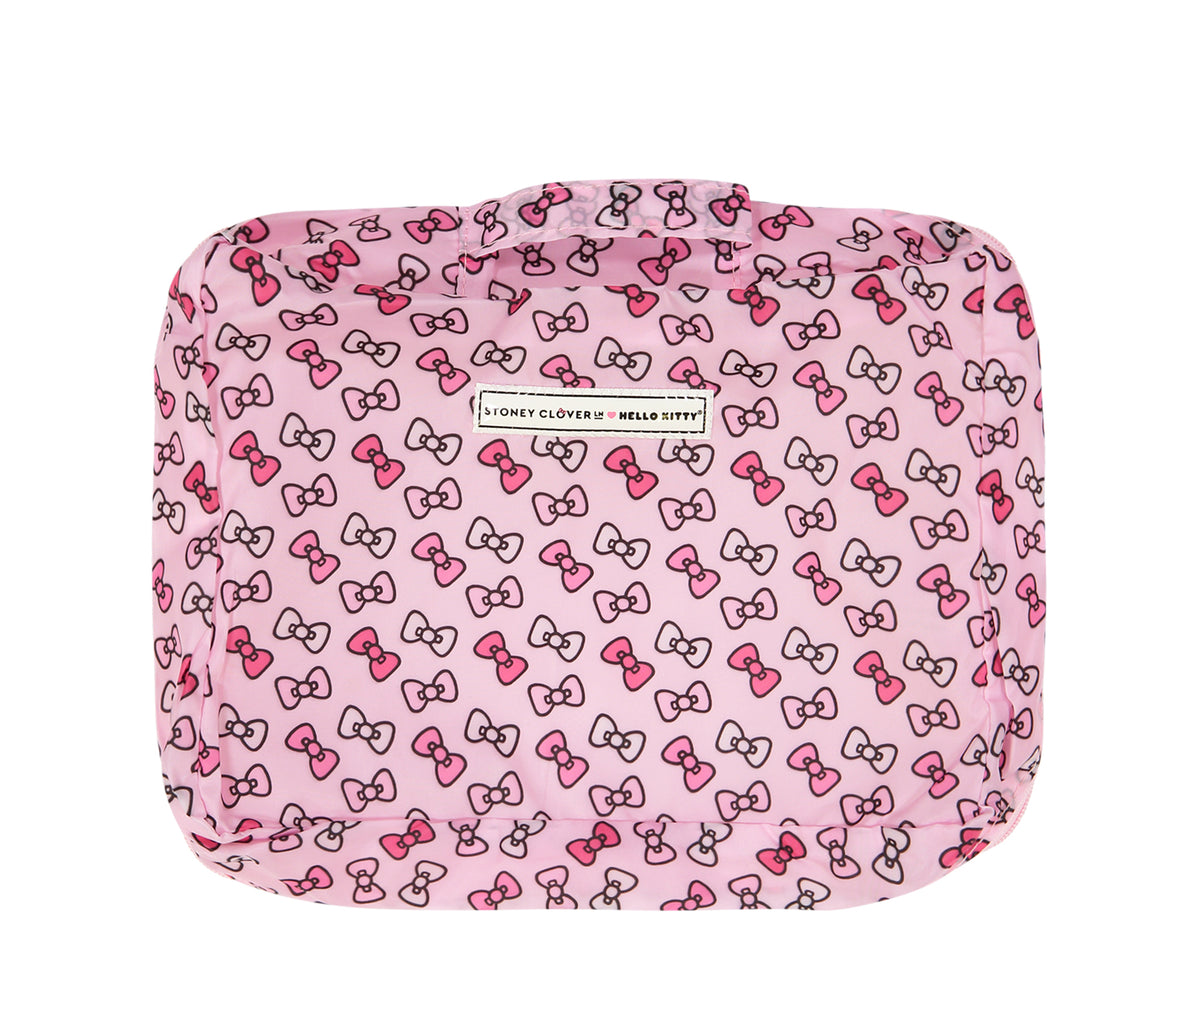 Stoney Clover Lane x Hello Kitty Bows Packing Cubes